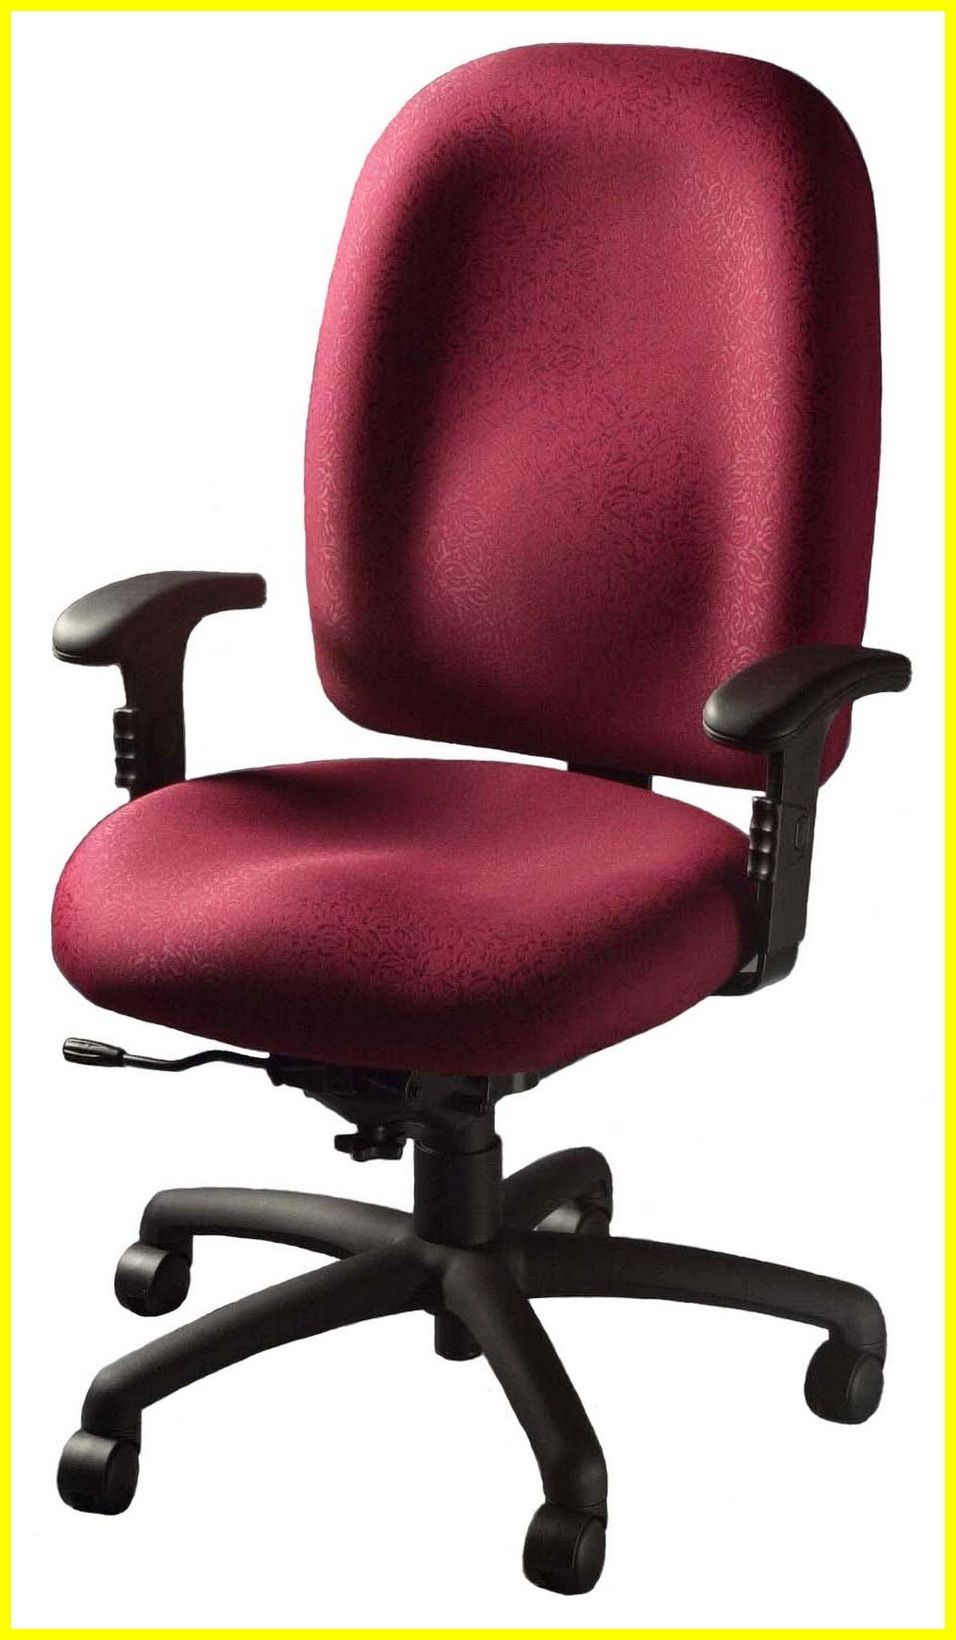 114 Reference Of Computer Desk Chairs Eames In 2020 Best Office Chair Modern Home Office Furniture Desk Chair